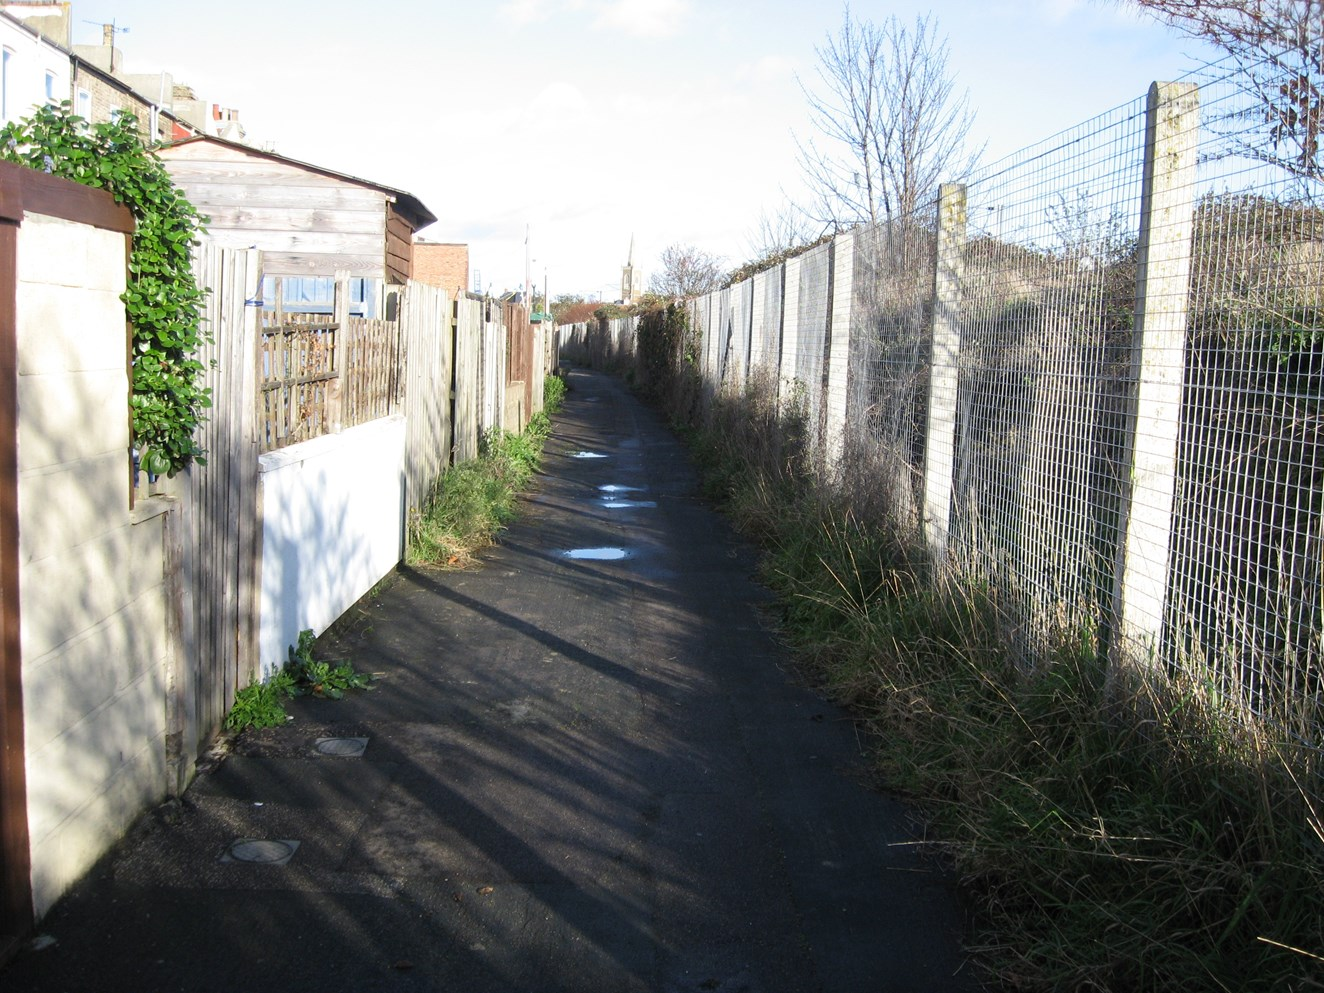 HARWICH RAILWAY CLEAN-UP NETS SEVEN TONNES OF FLY-TIPPED RUBBISH: After - the alleyway following the clean-up